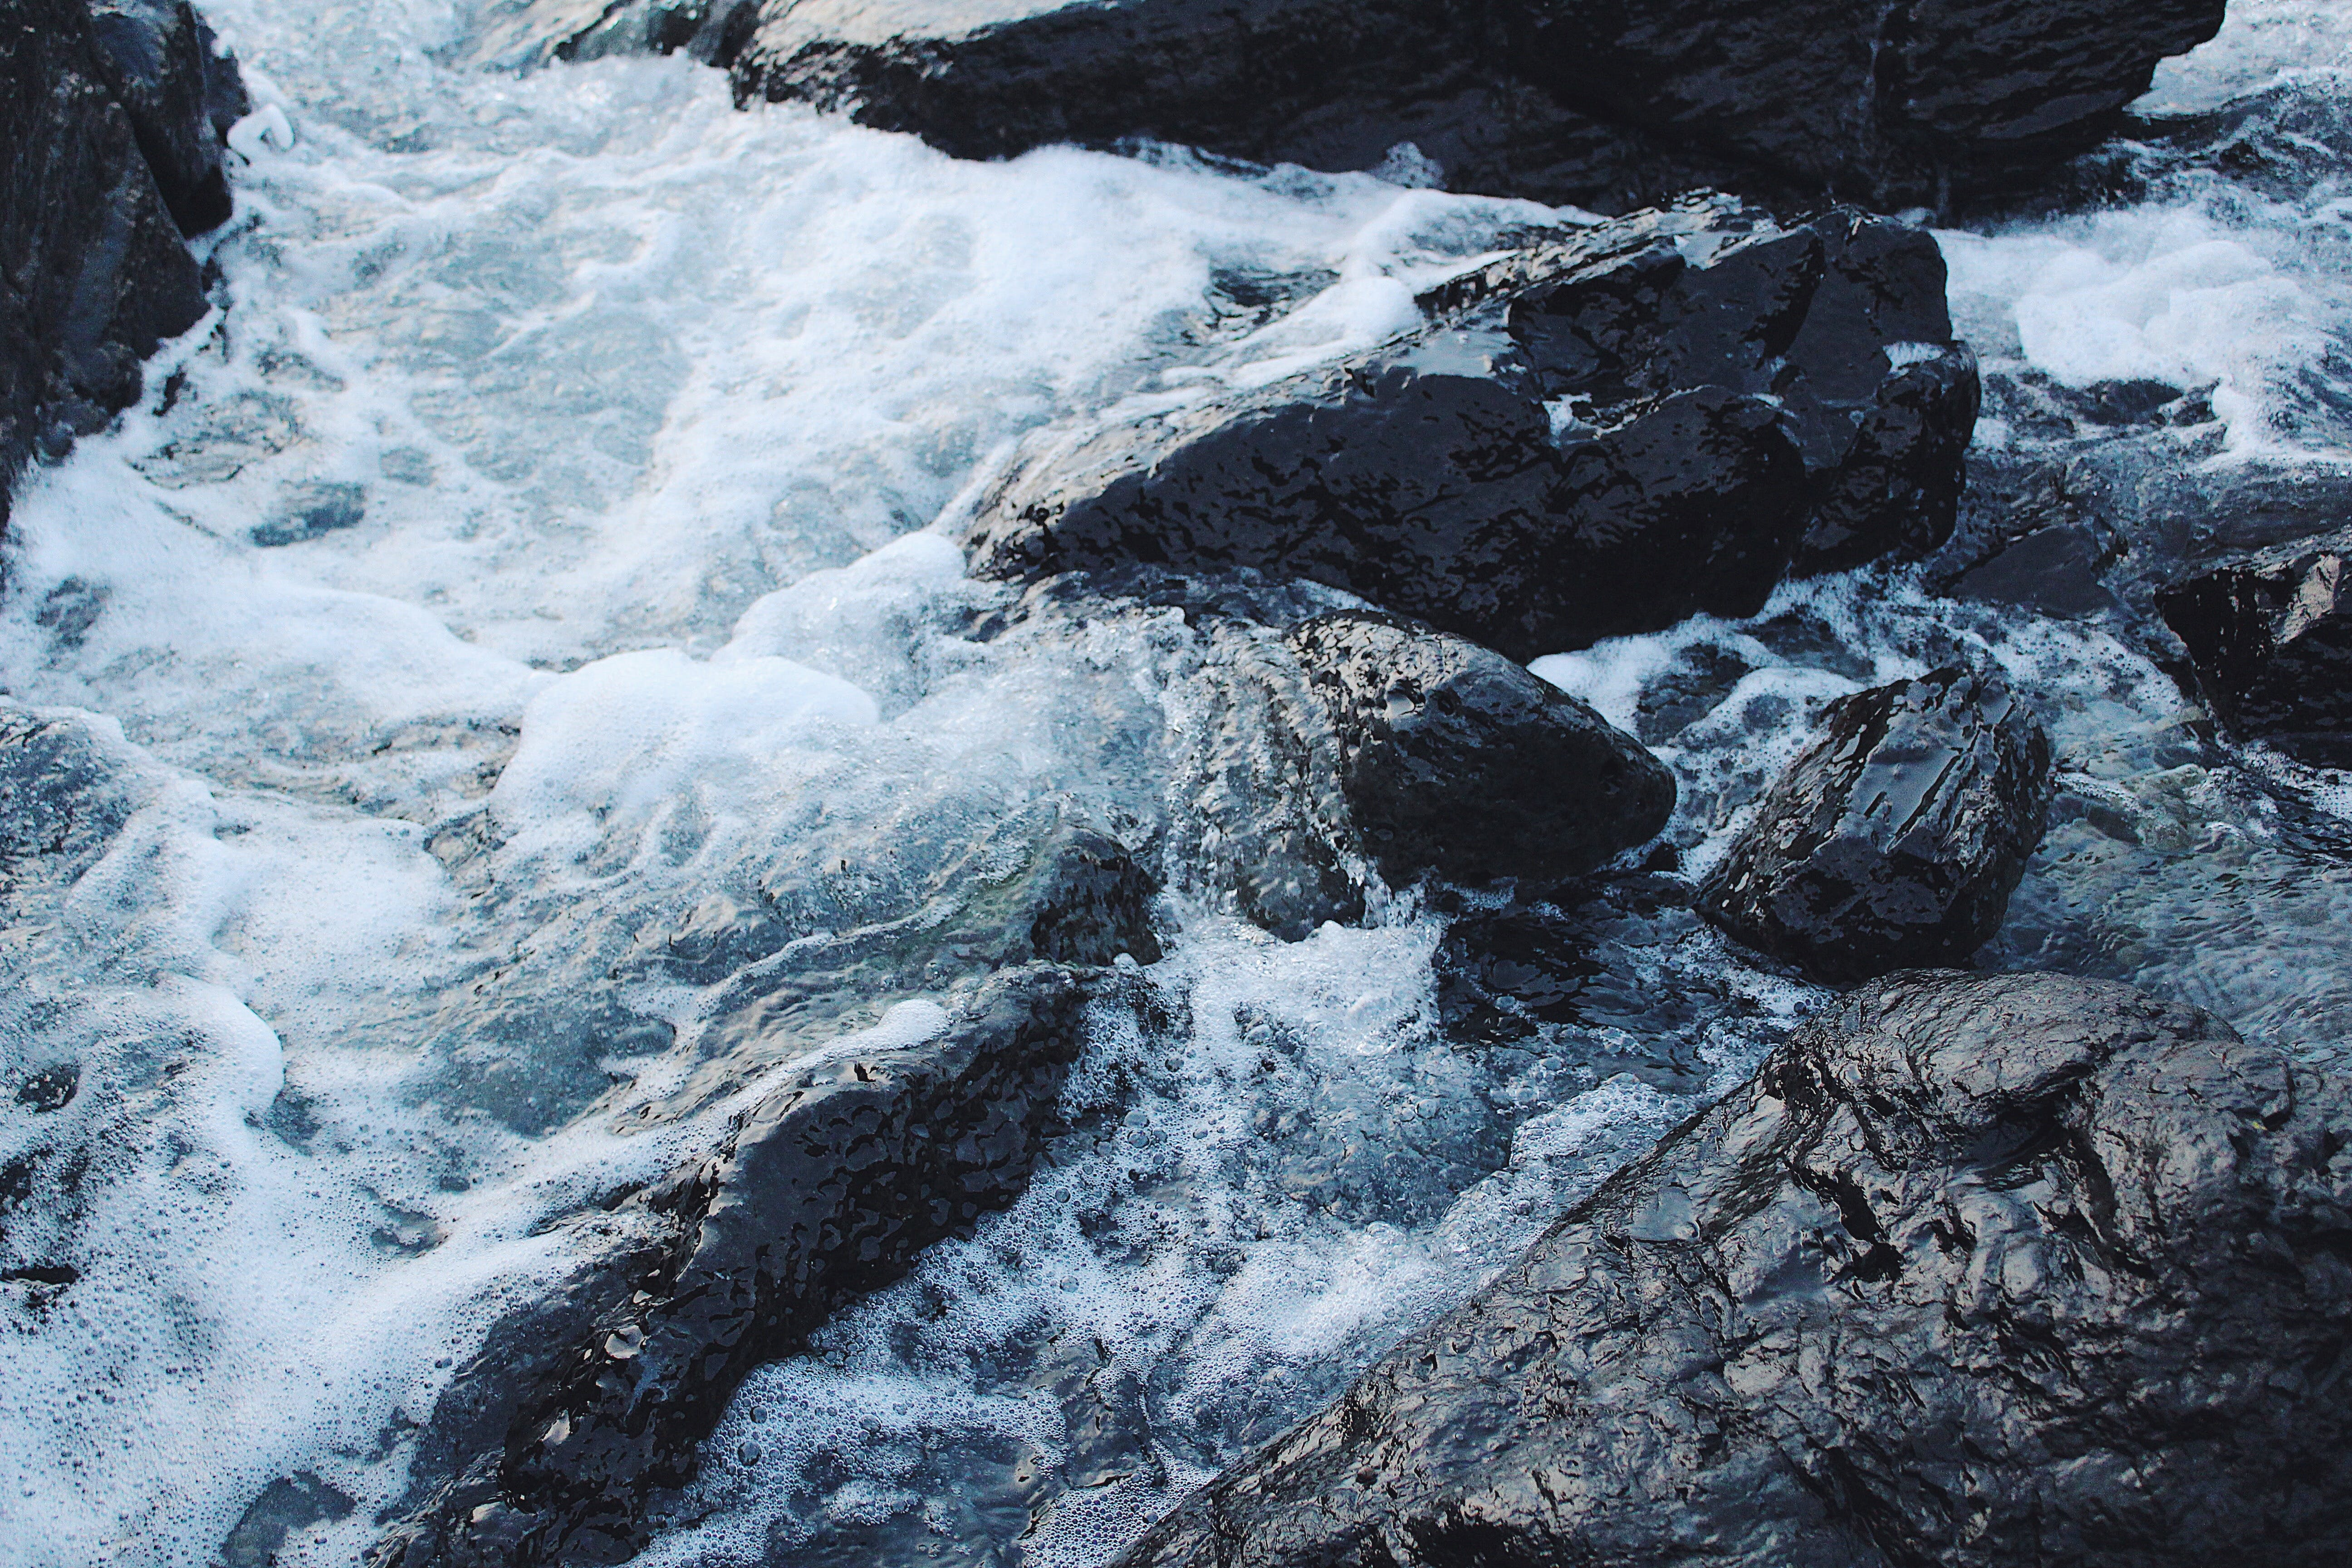 High Angle Photo of Body of Water Splashing Against Gray Rocks